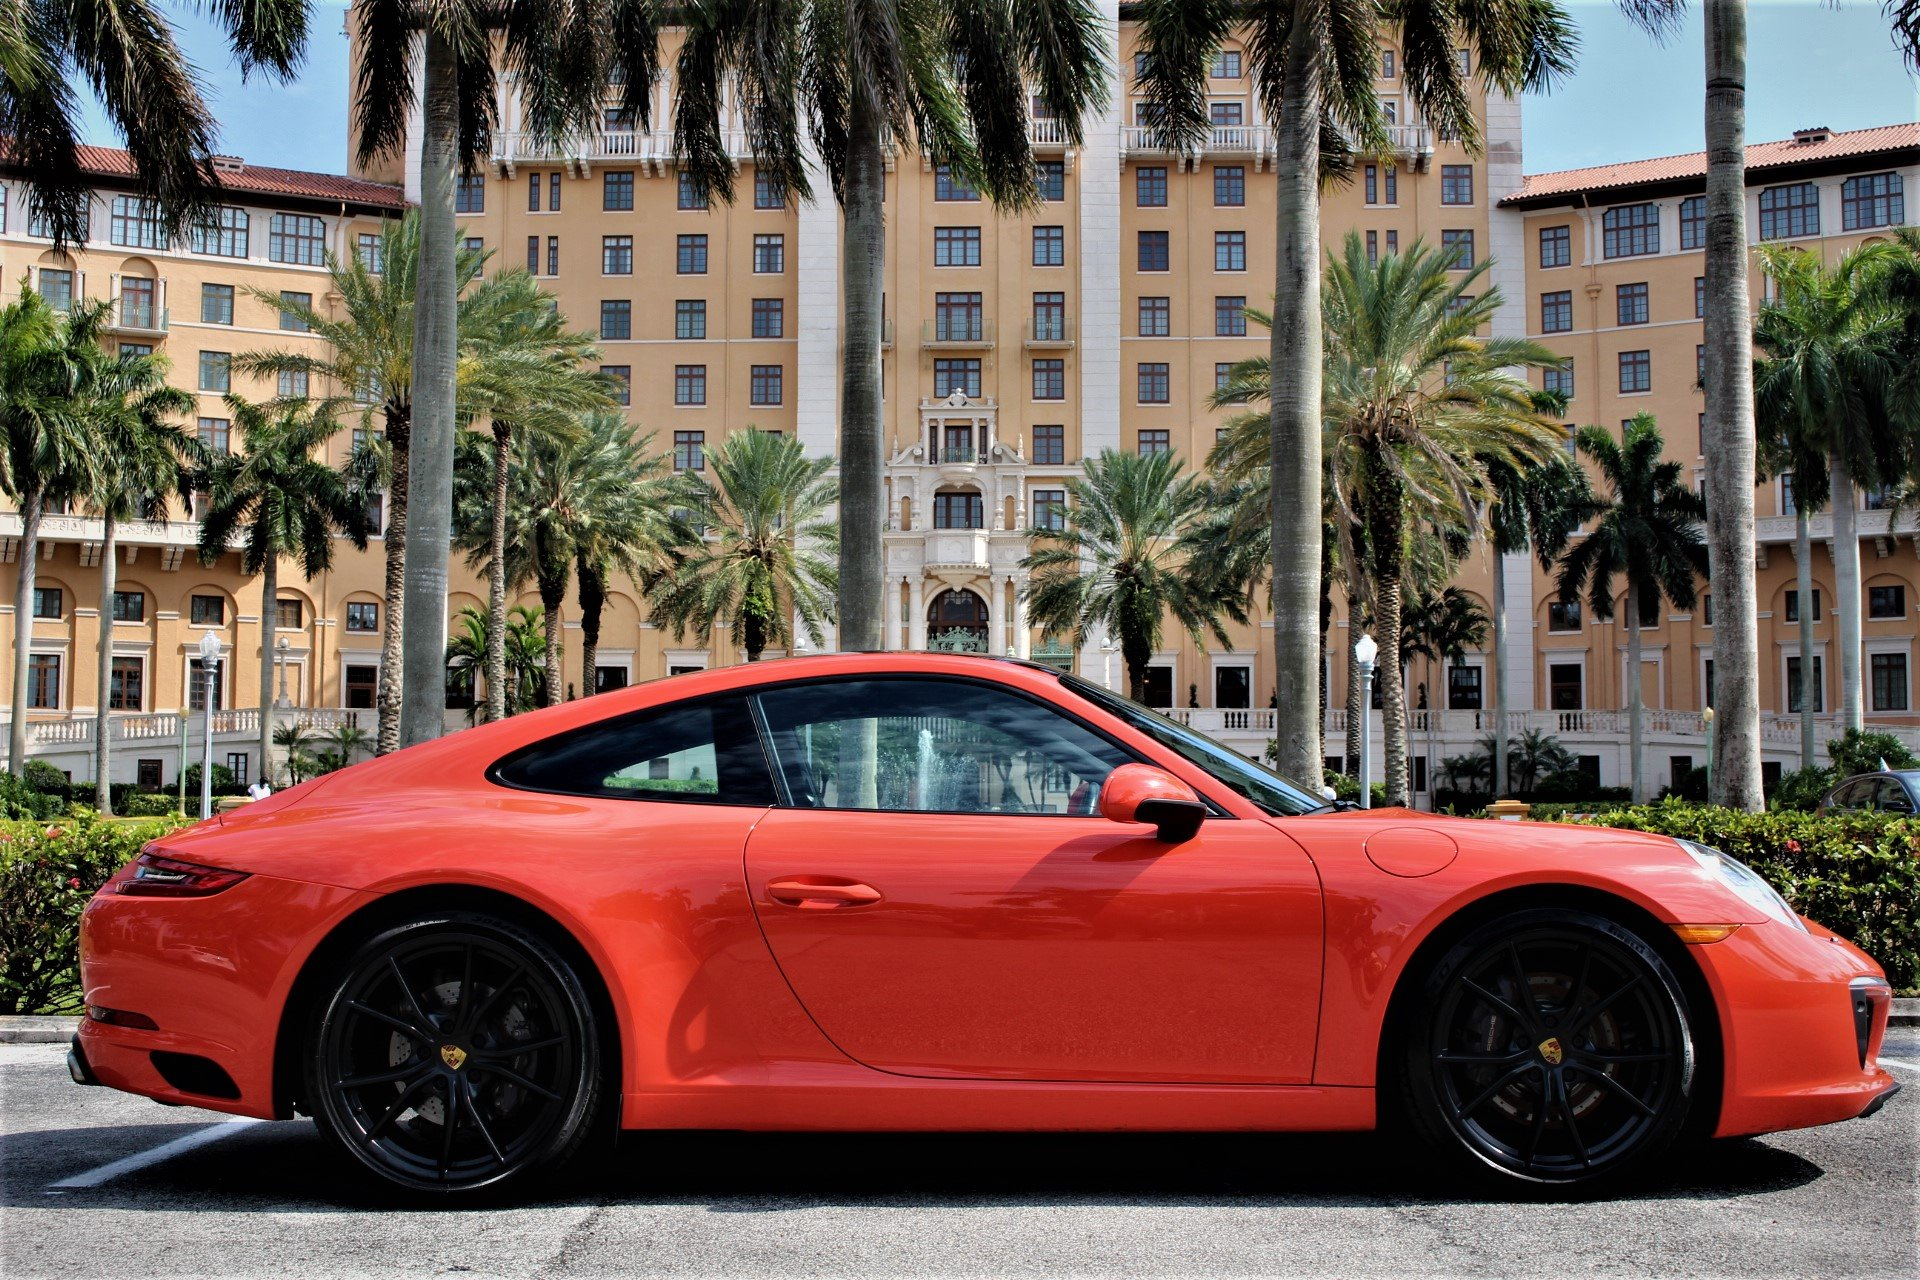 Used 2017 Porsche 911 Carrera for sale Sold at The Gables Sports Cars in Miami FL 33146 1